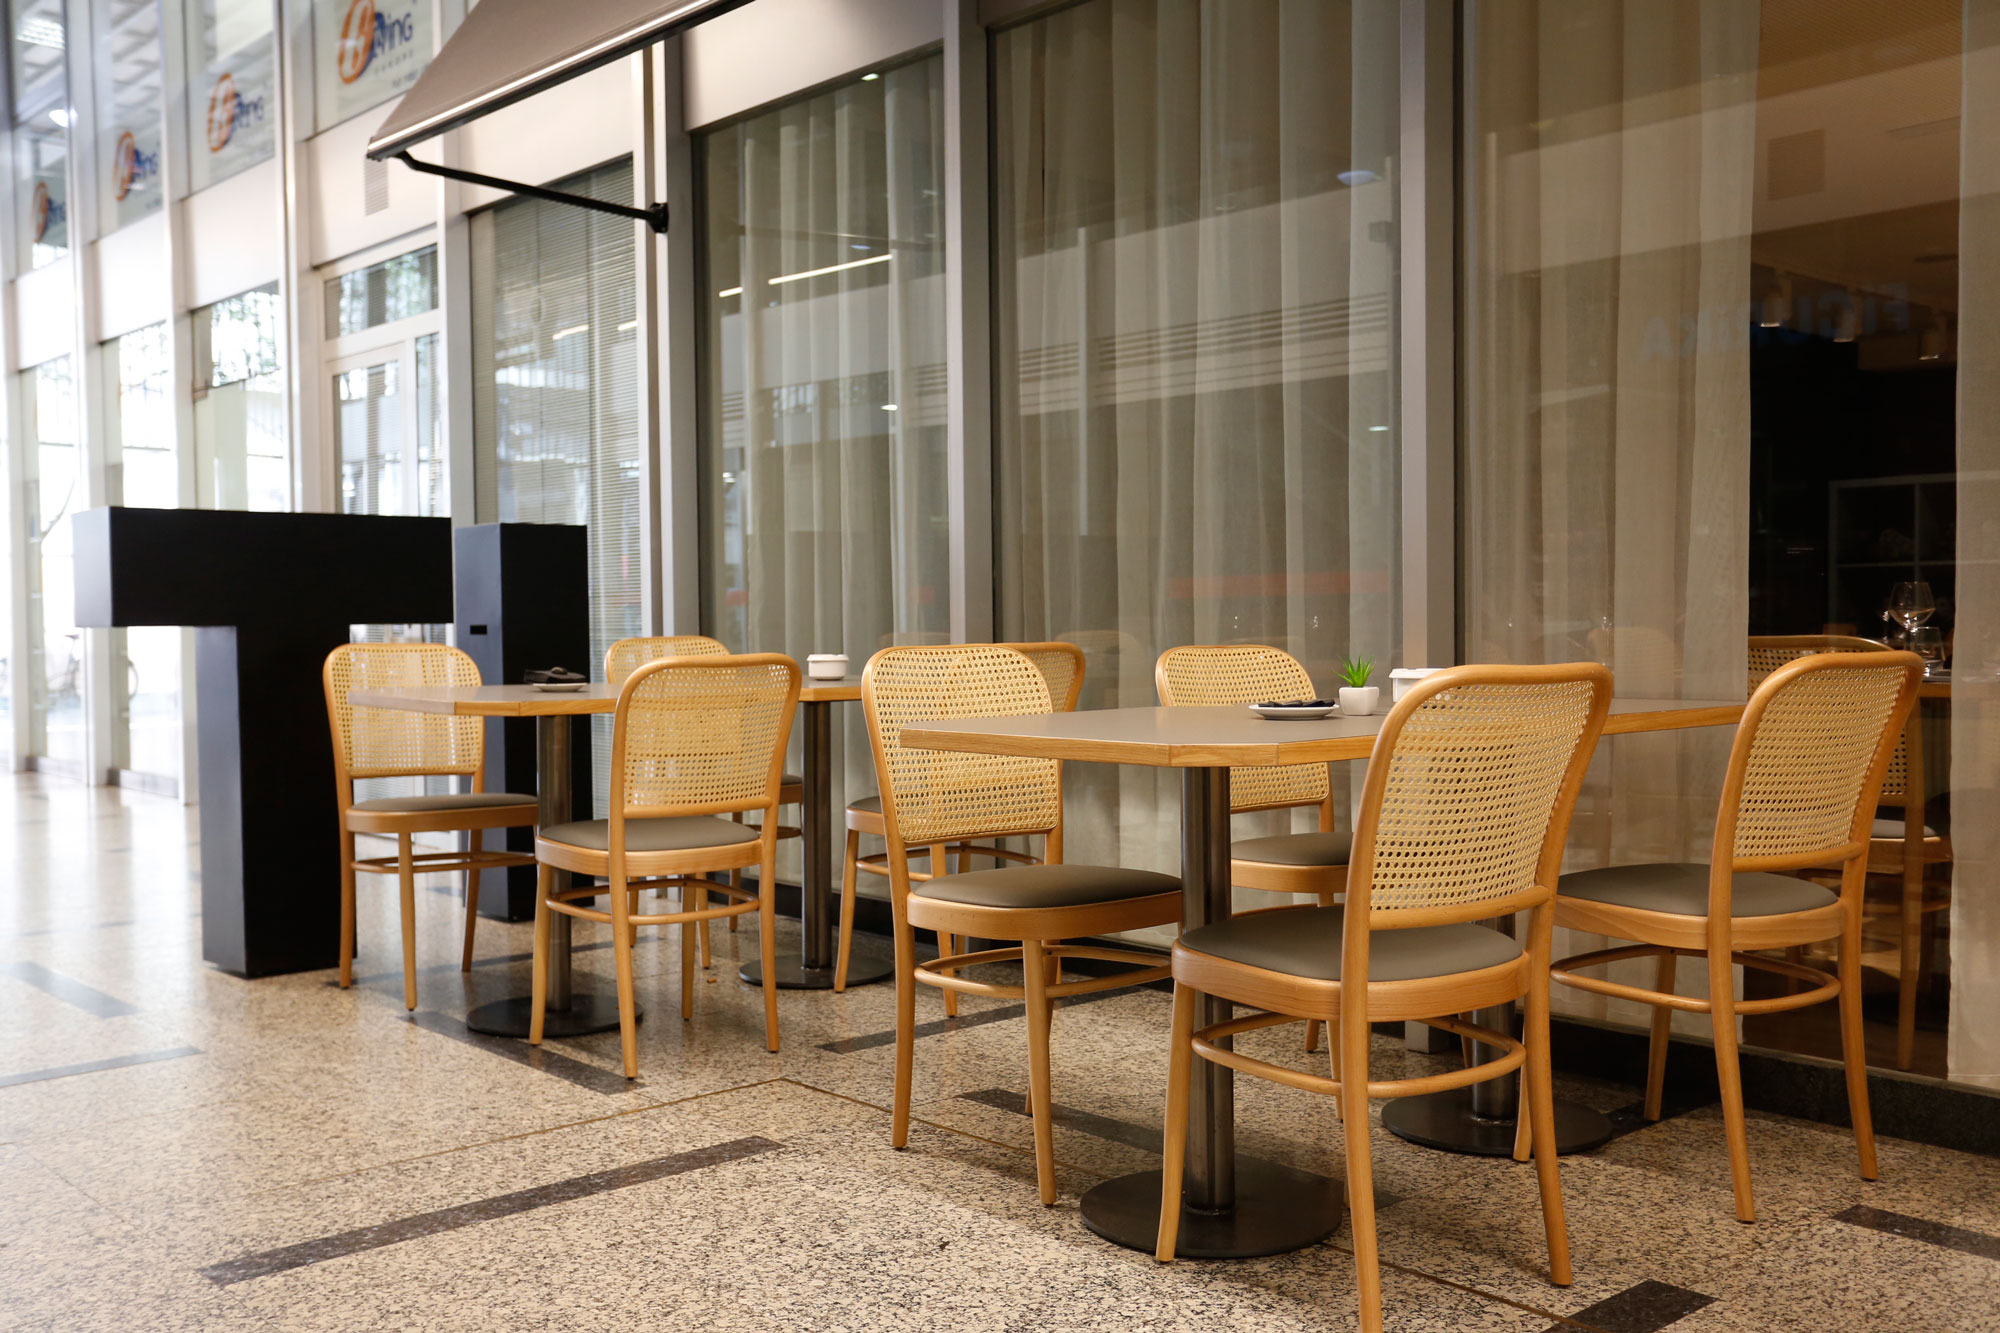 restaurant-IT-Barcelona-mobiliari-Silleria-Verges-2